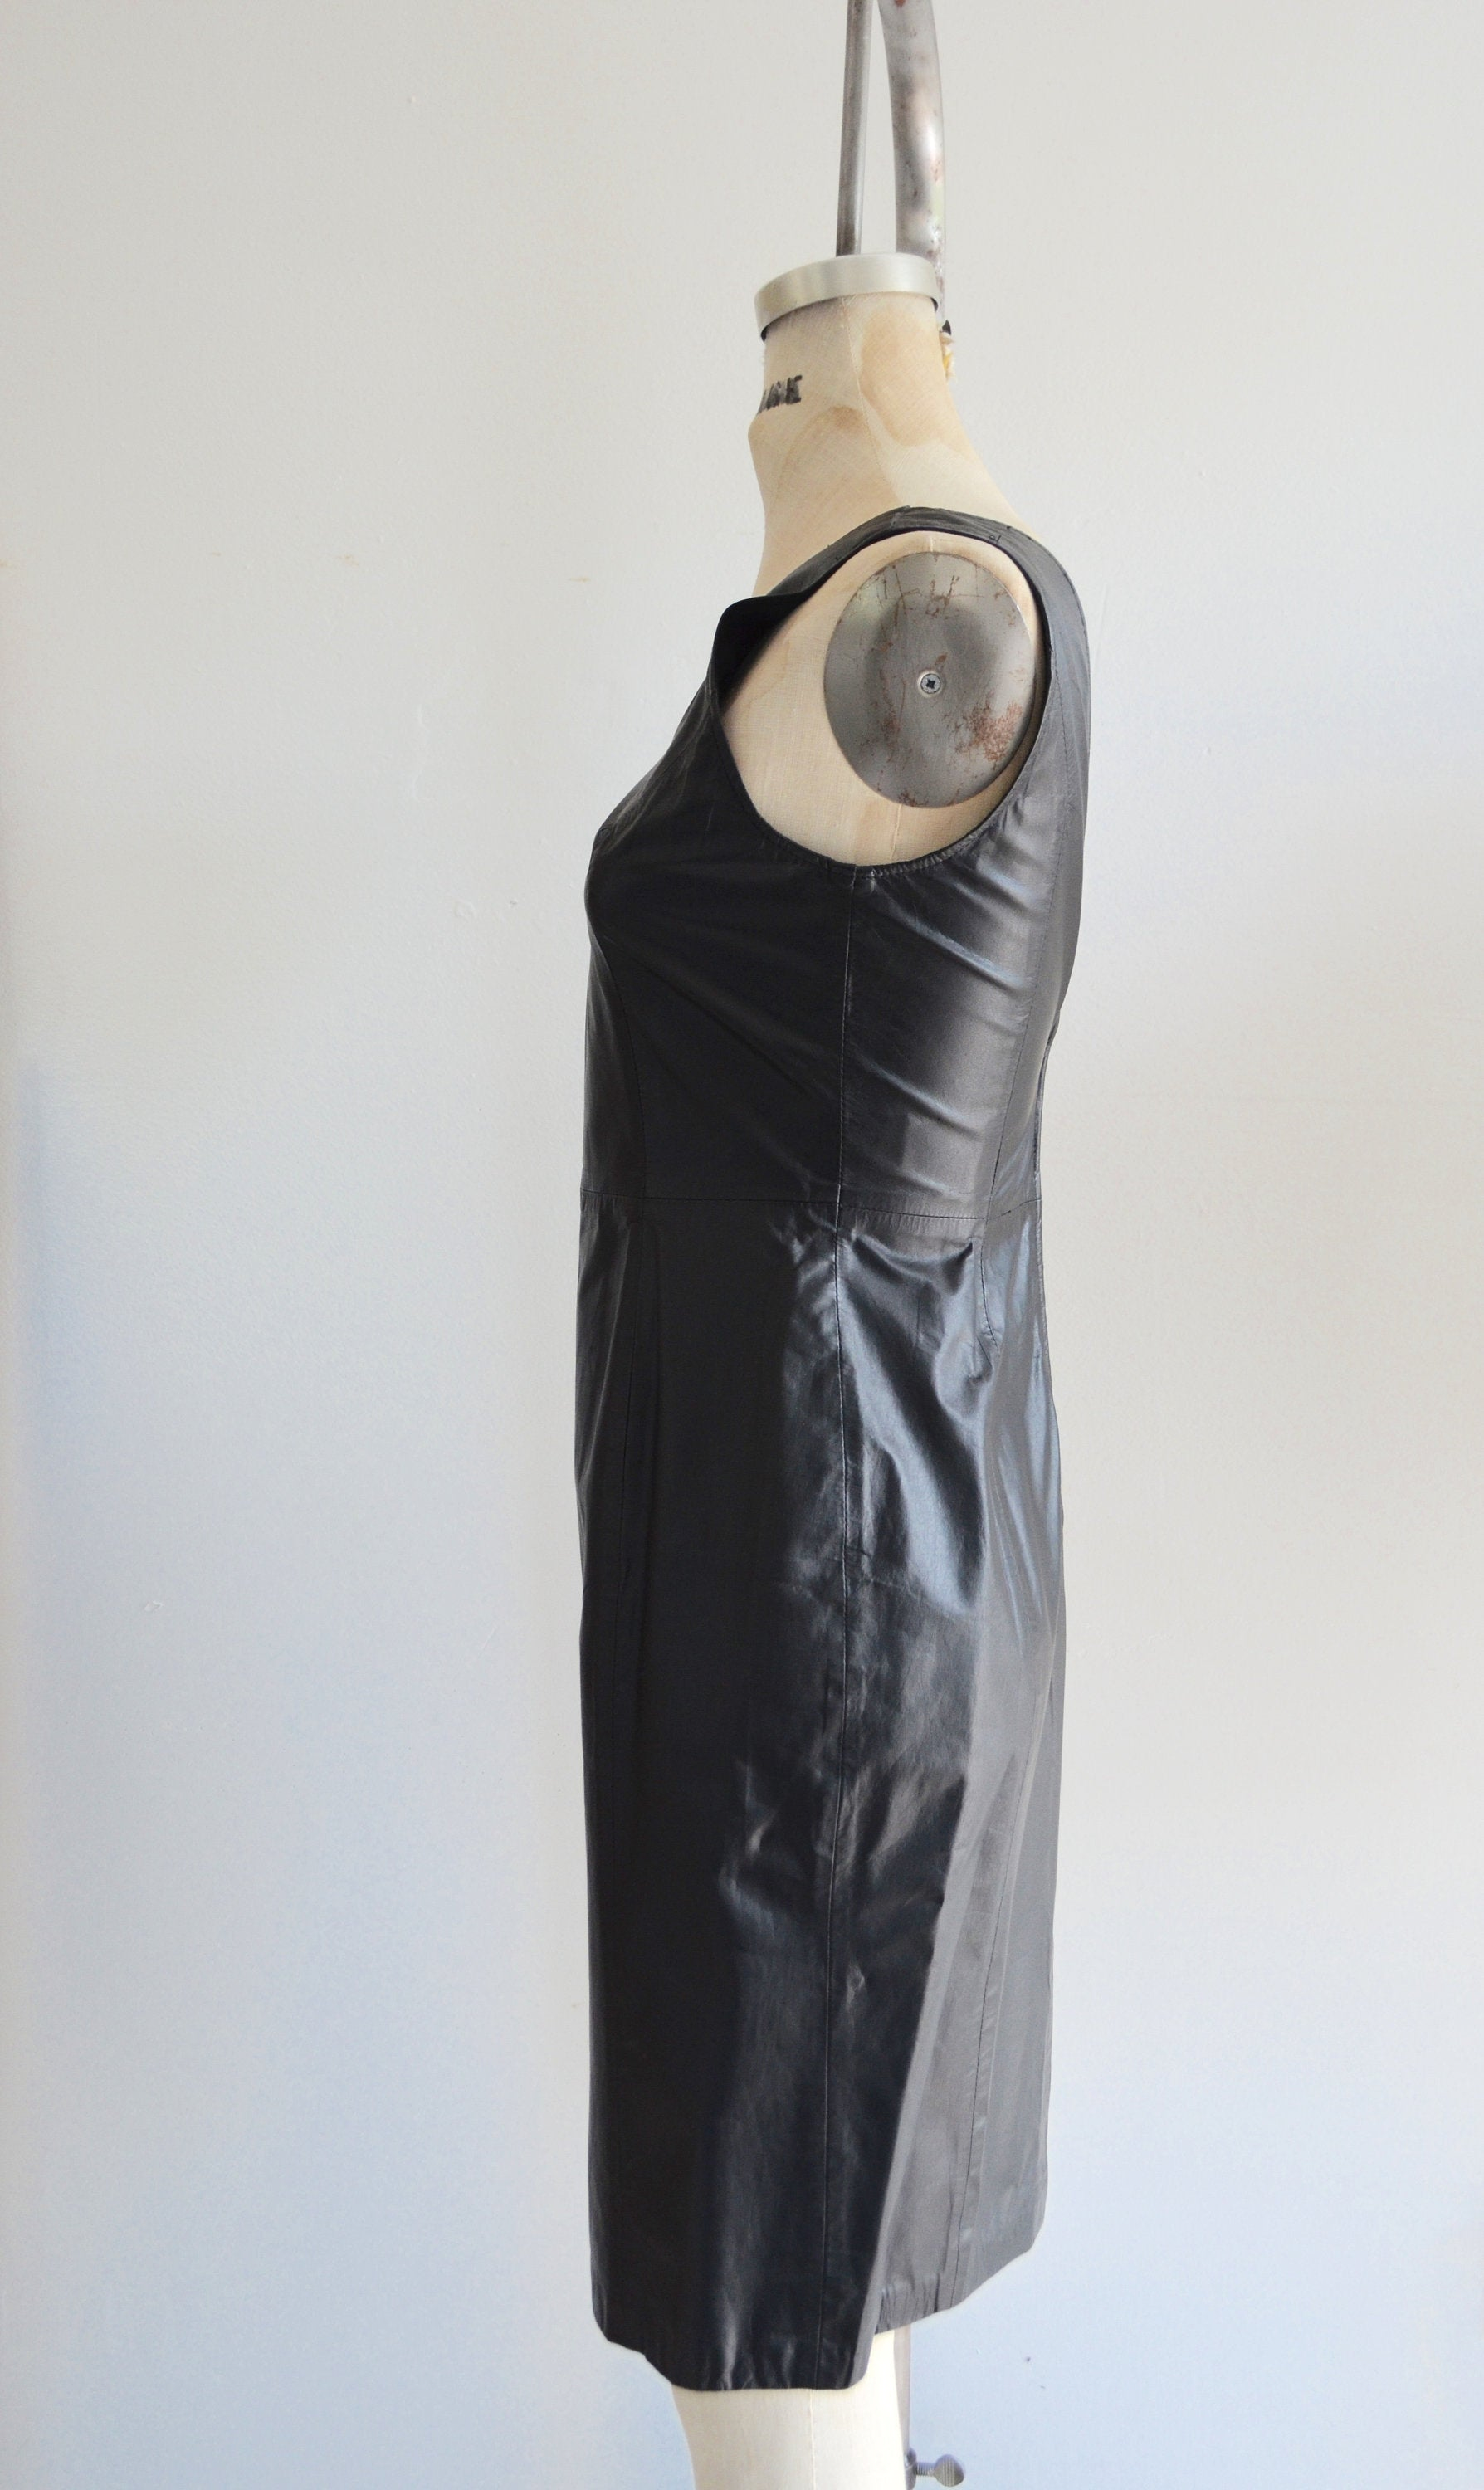 80S Military Leather Sheath Dress Sleeveless Paneled Black Plunging Neckline Rock Secretary Dress